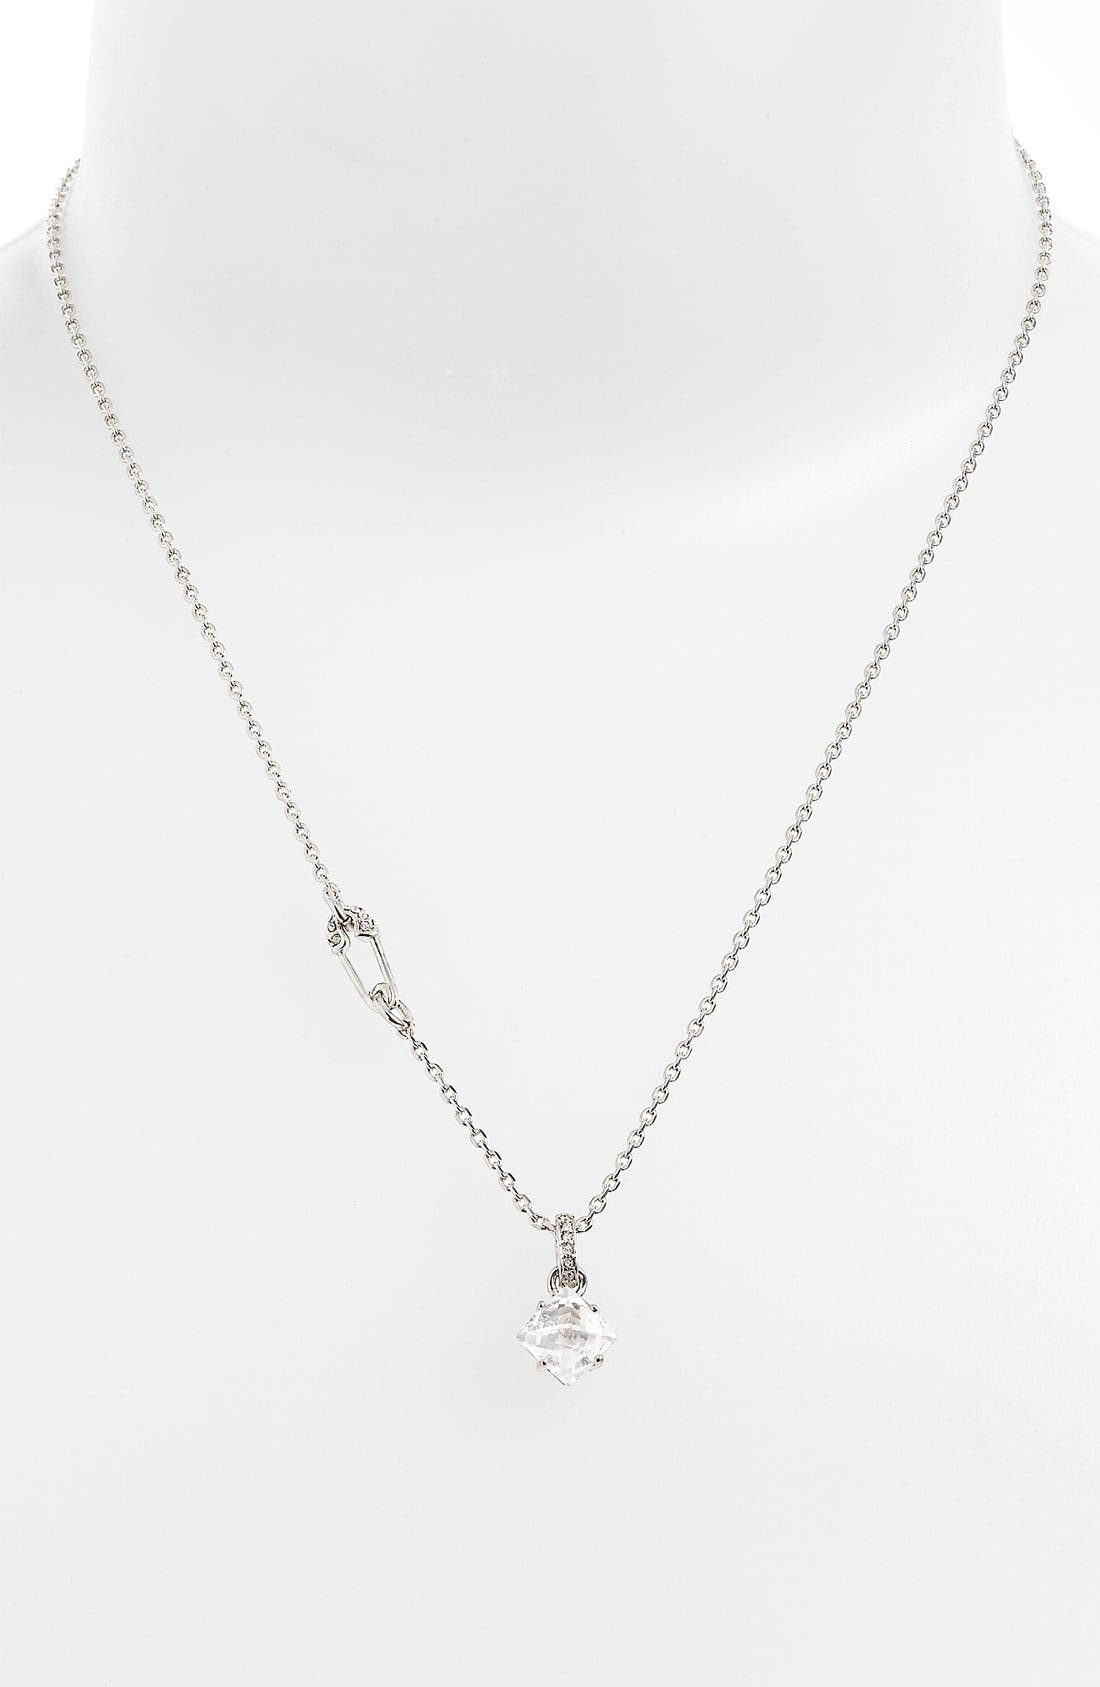 Alternate Image 1 Selected - Juicy Couture 'Pretty in Punk' Pendant Necklace